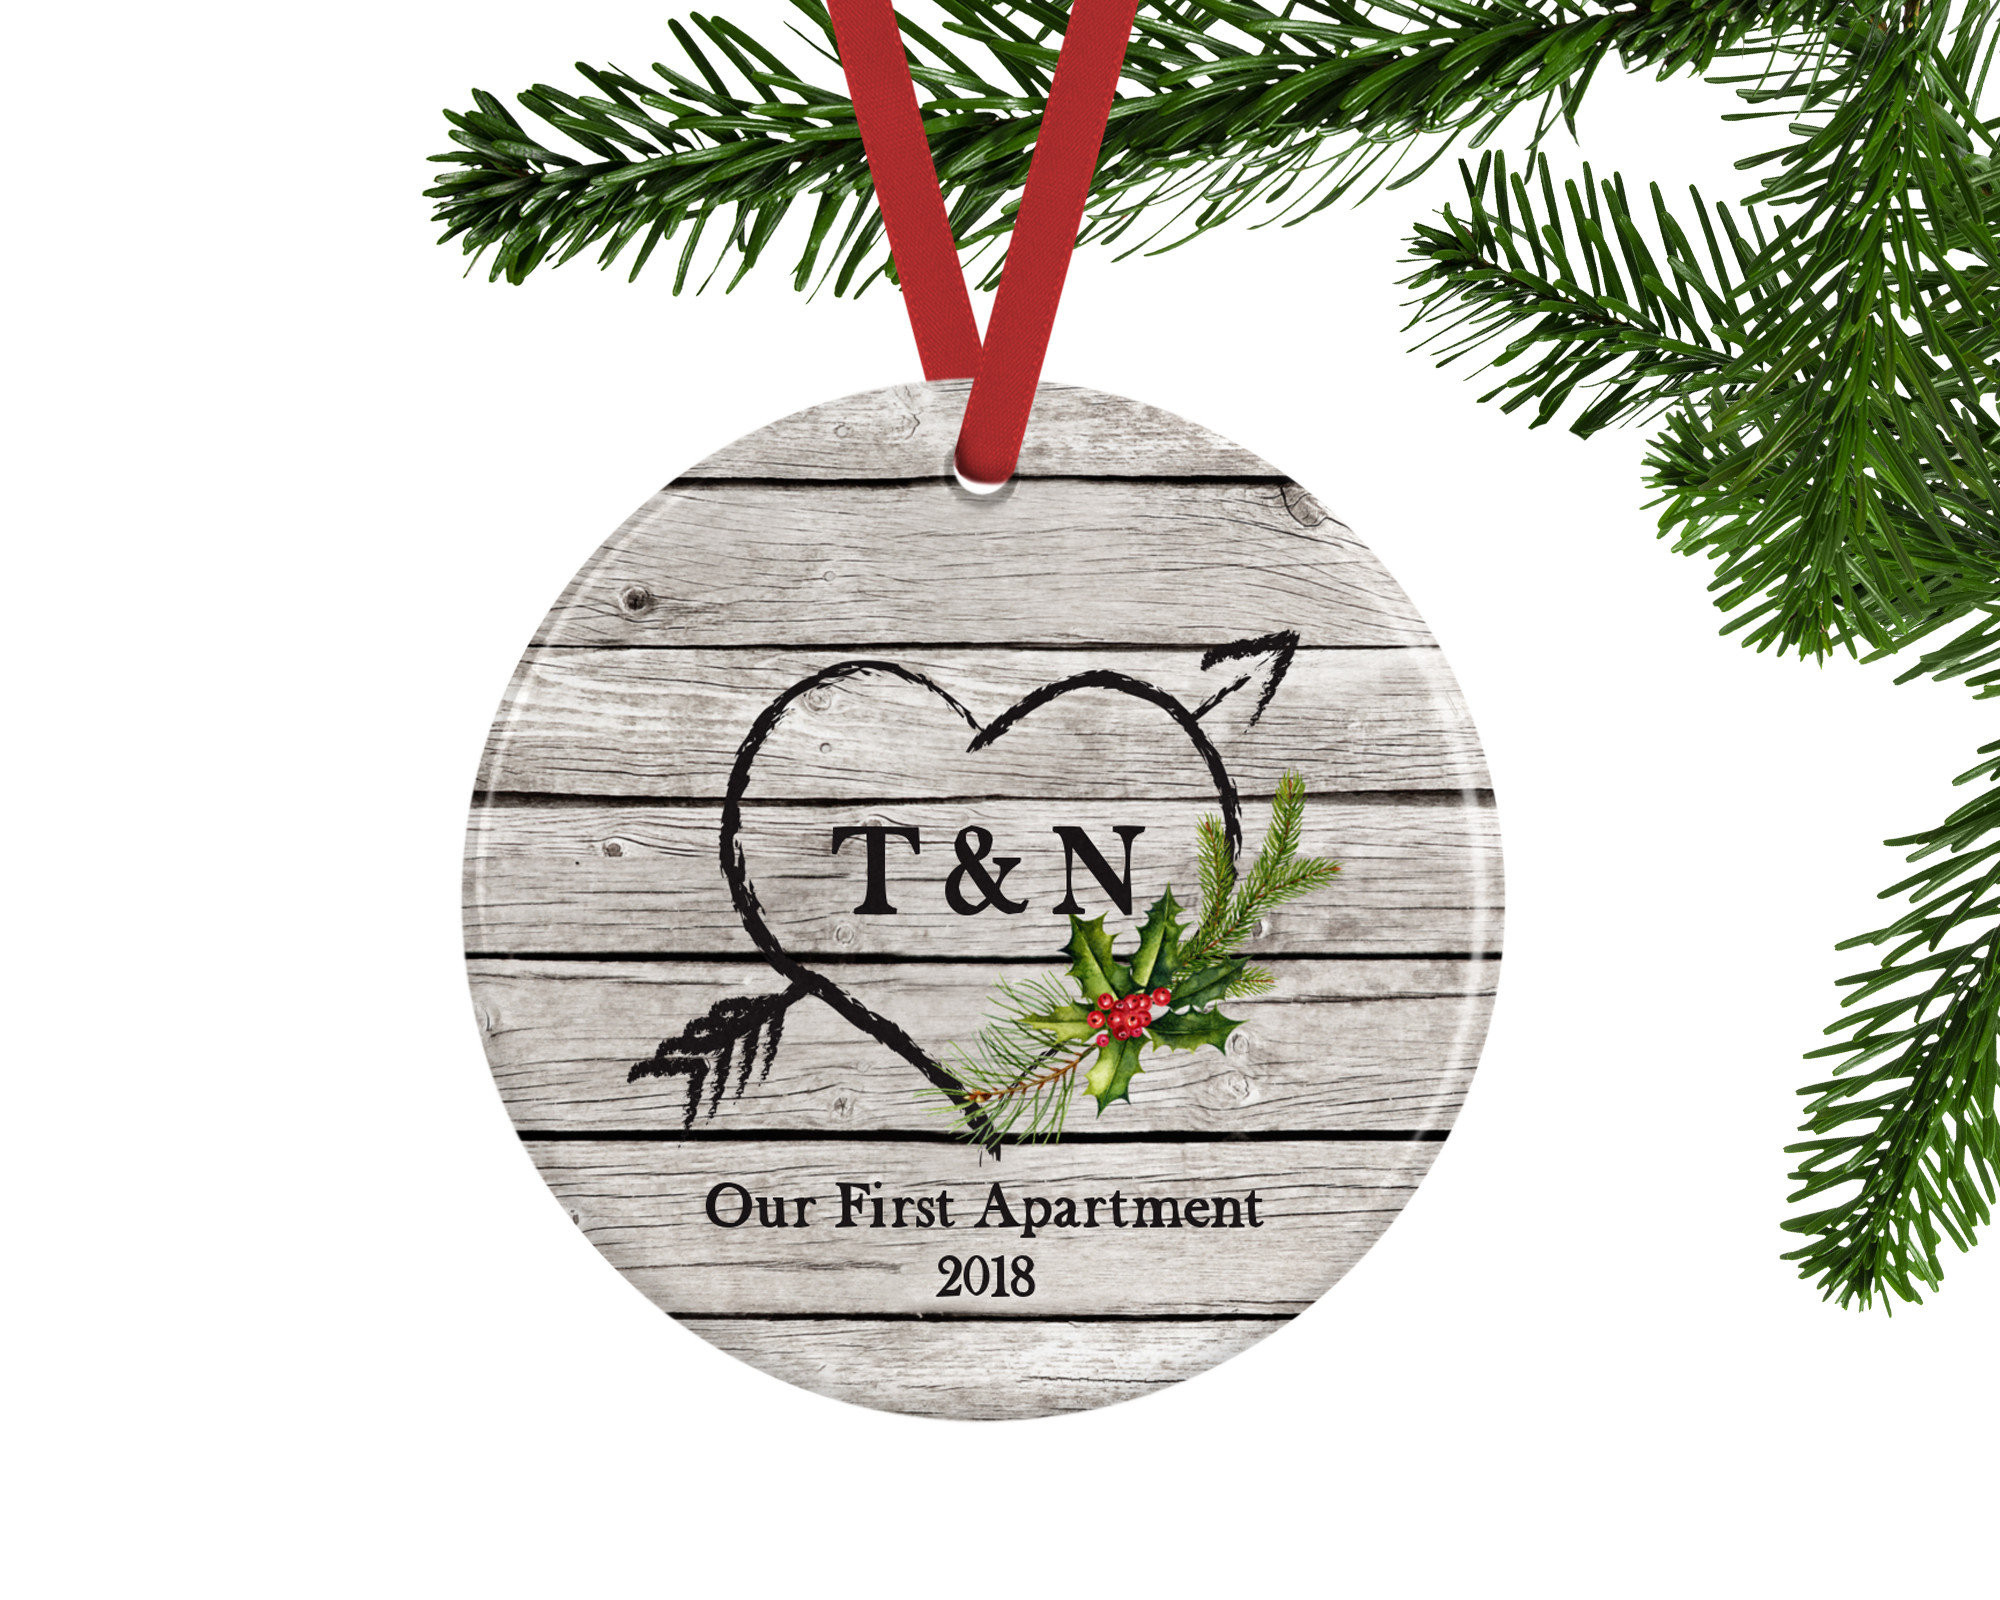 First Apartment Christmas Ornament  Our First Apartment Christmas Ornament Personalized Gift for